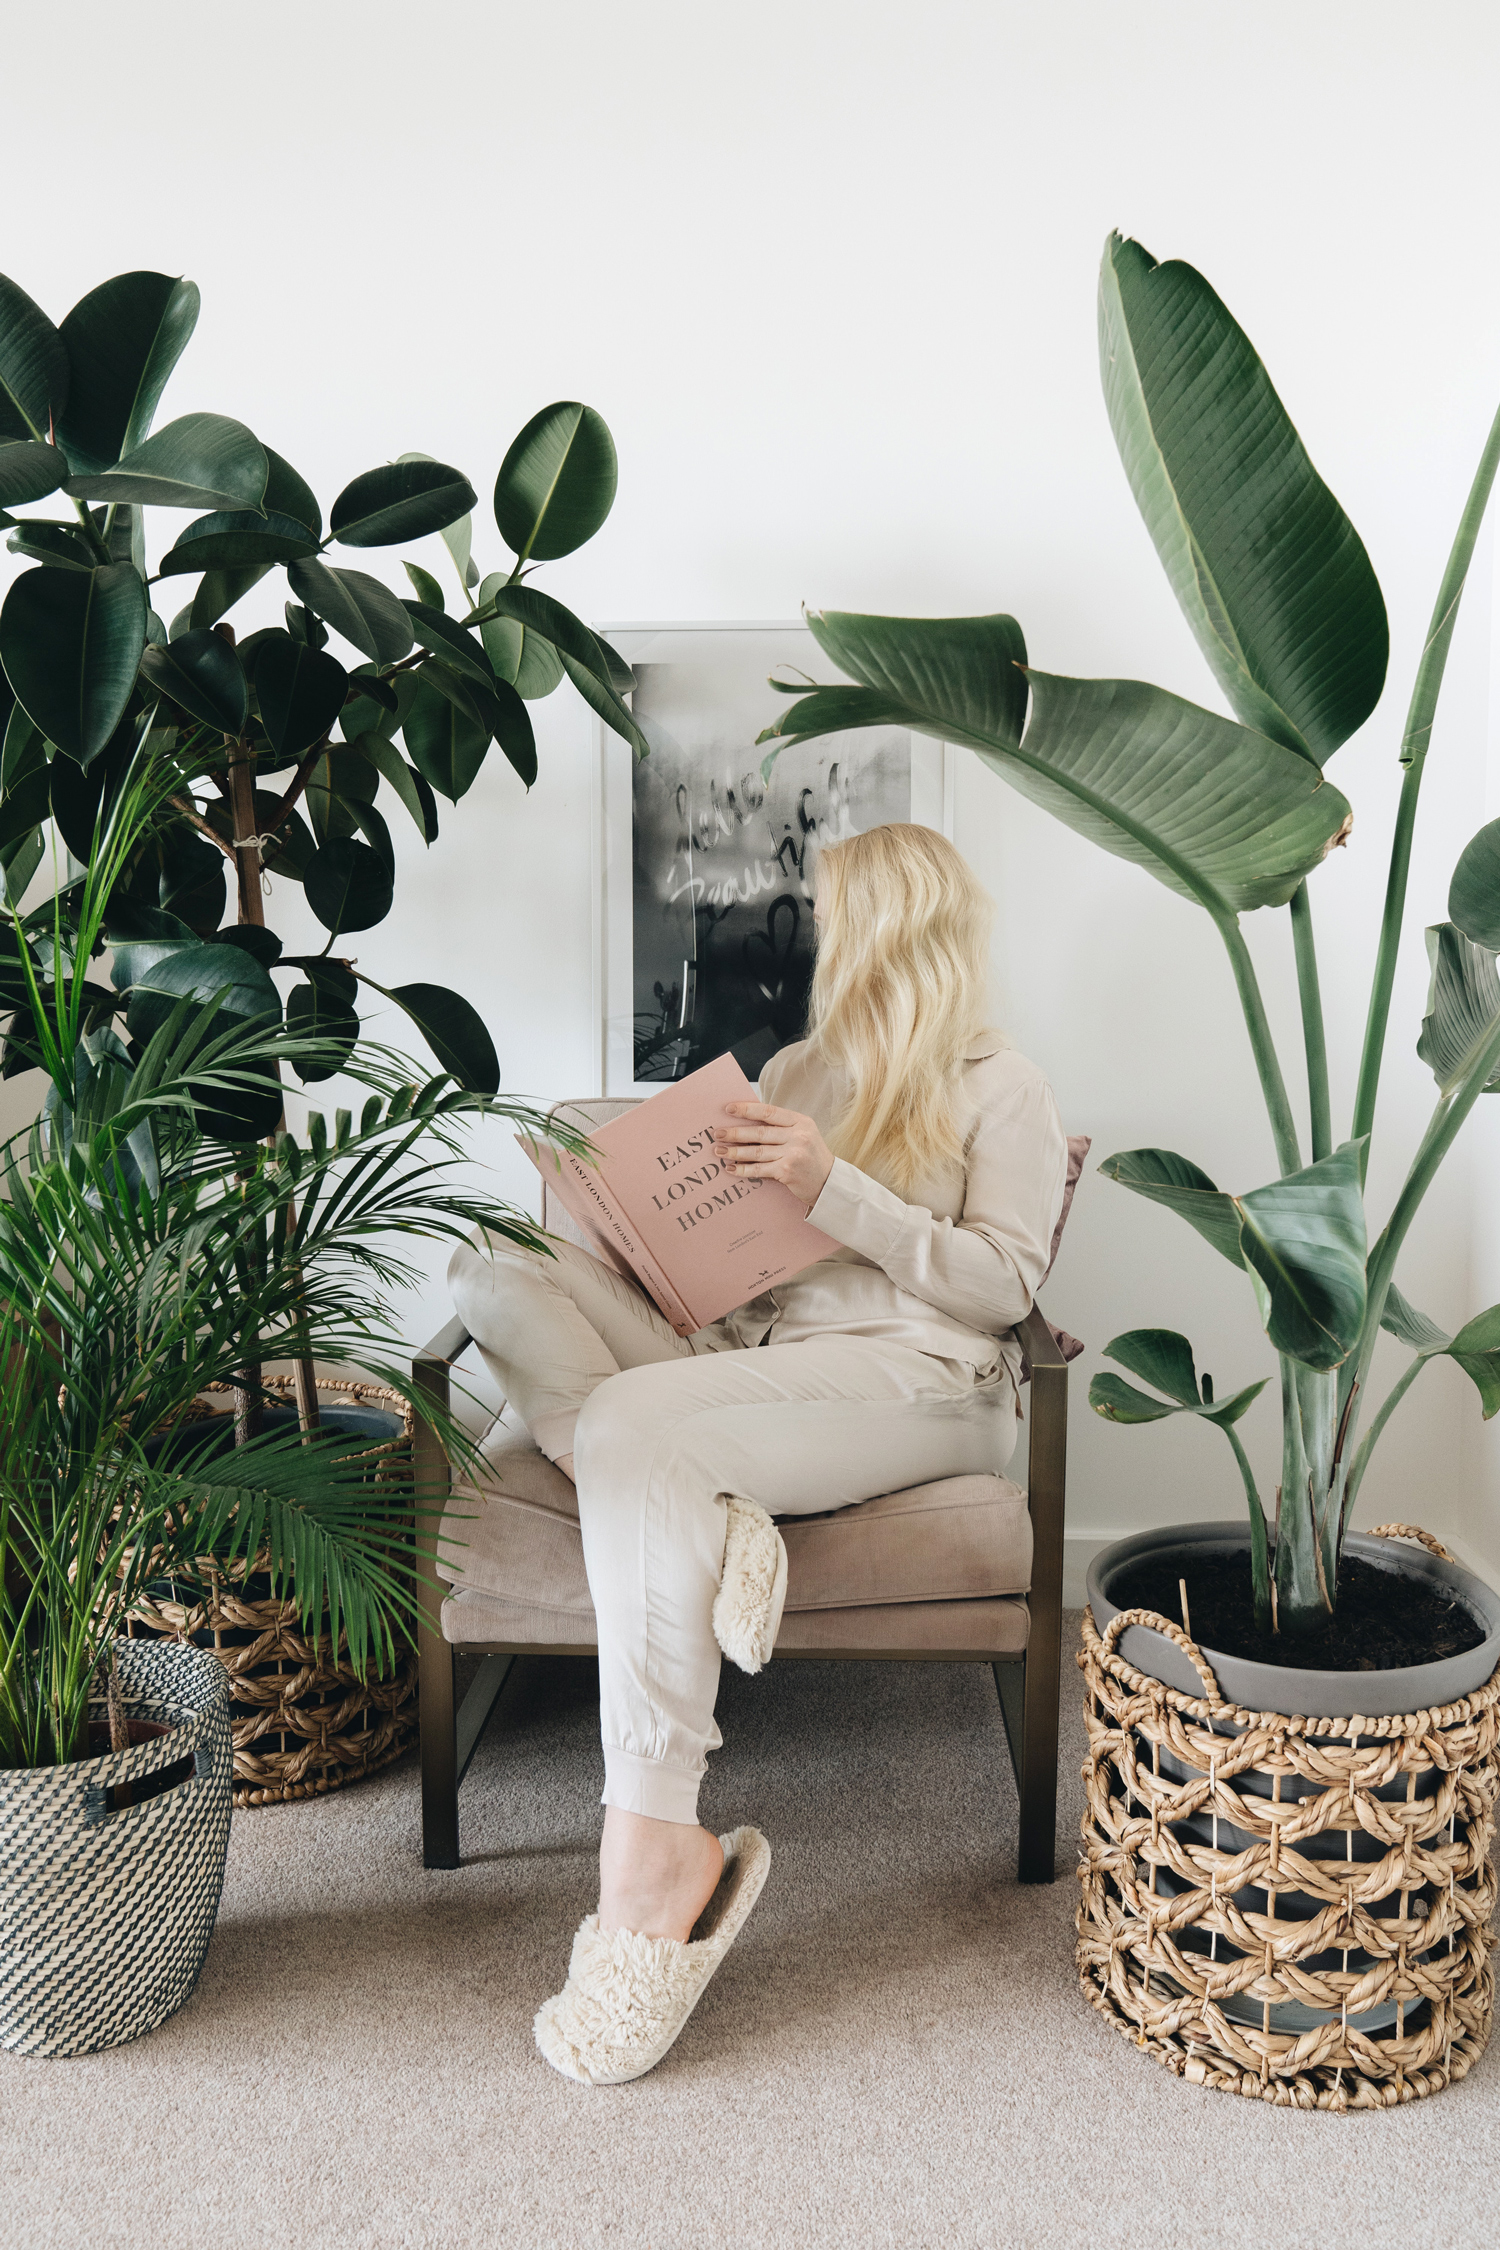 Botanical Interiors: How To Bring Nature Indoors